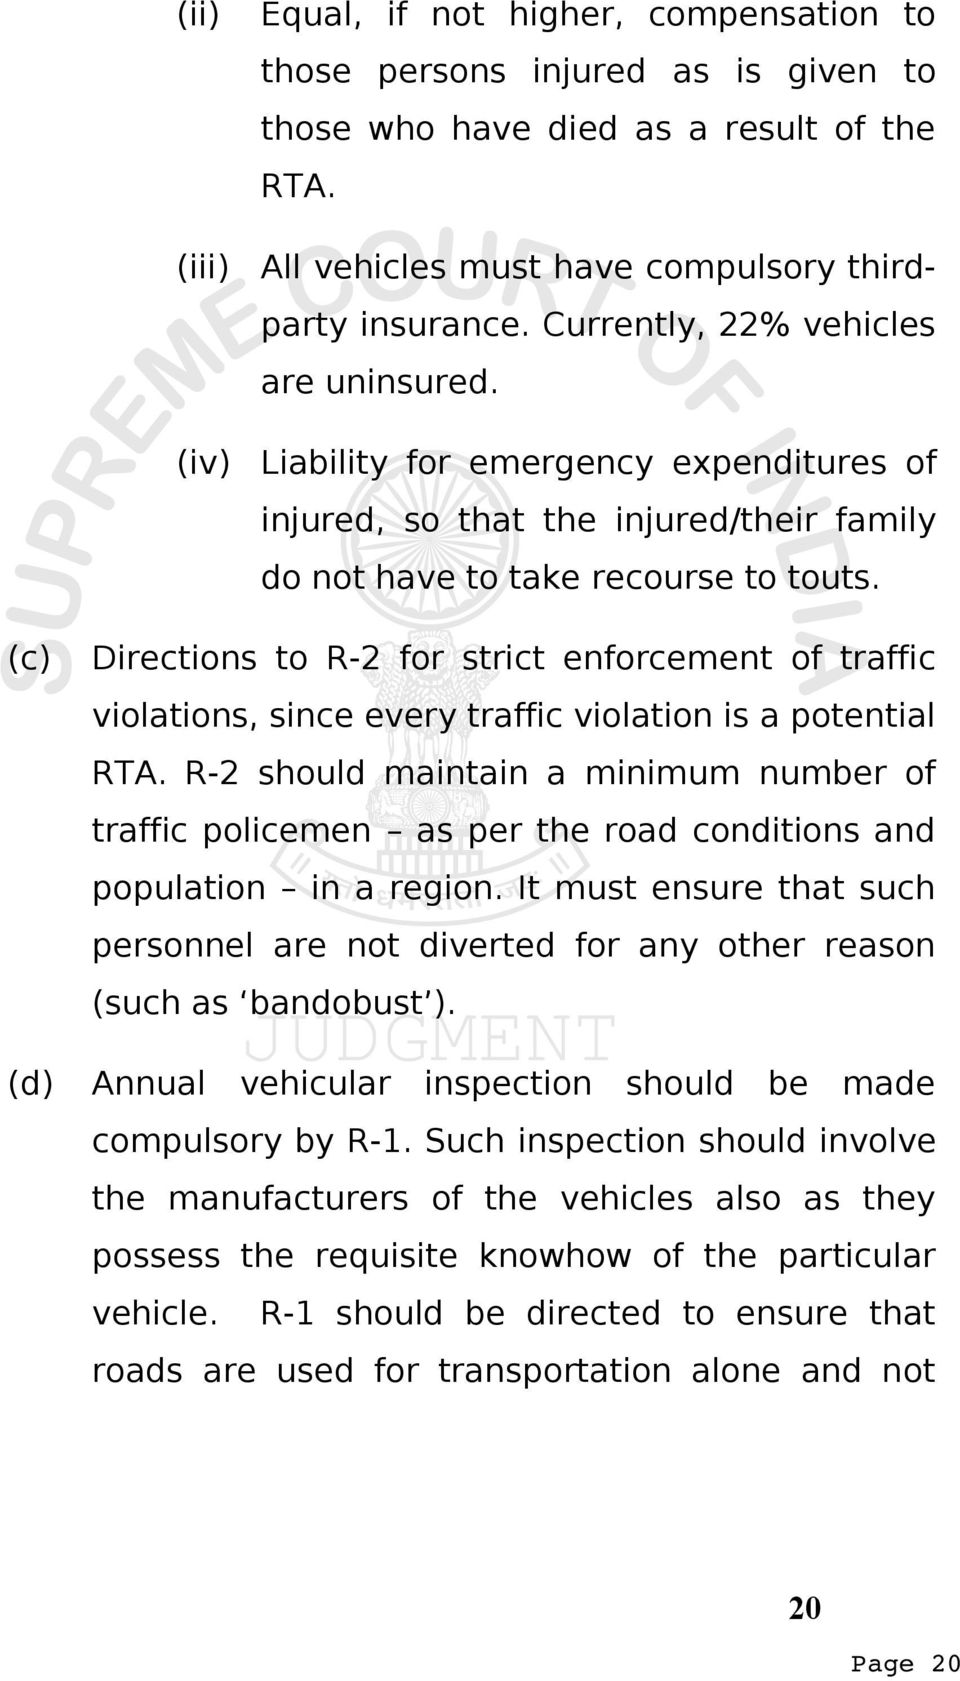 (c) (d) Directions to R-2 for strict enforcement of traffic violations, since every traffic violation is a potential RTA.